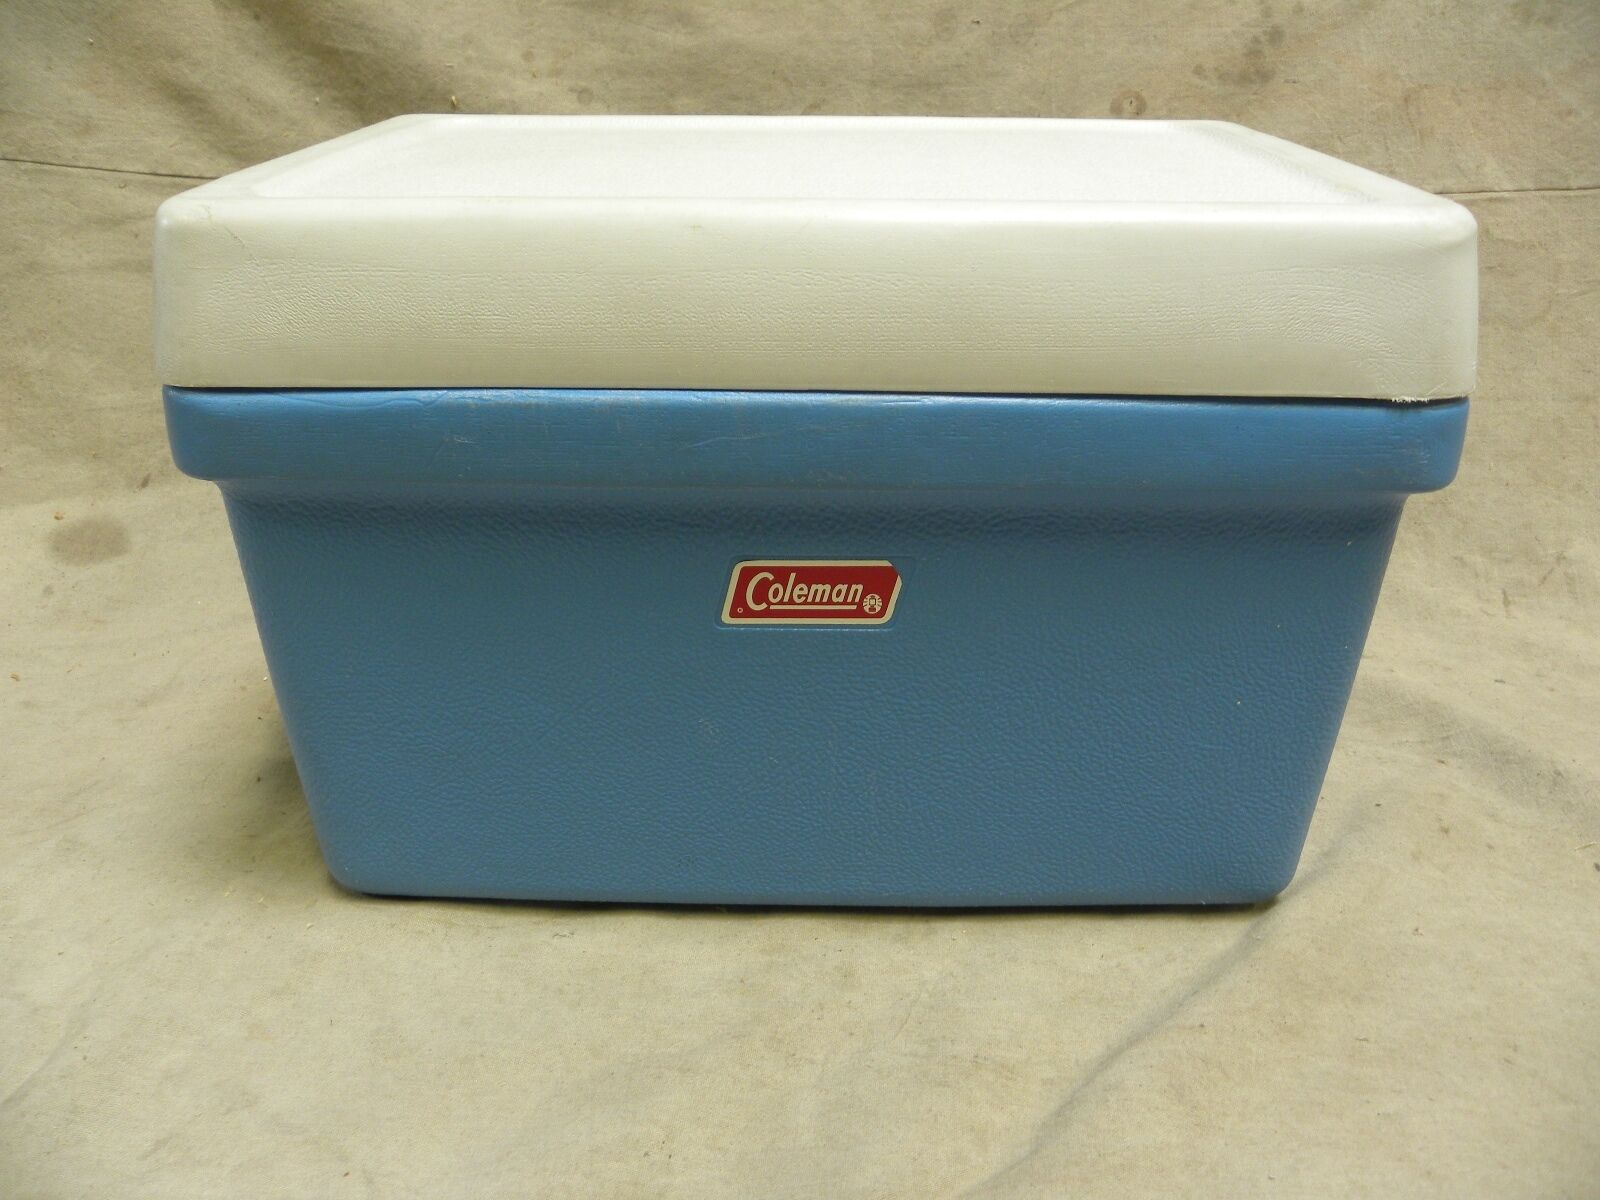 Vintage COLEMAN Metal Handle Plastic  Cooler Dated 5 1975 (A15)  save up to 80%